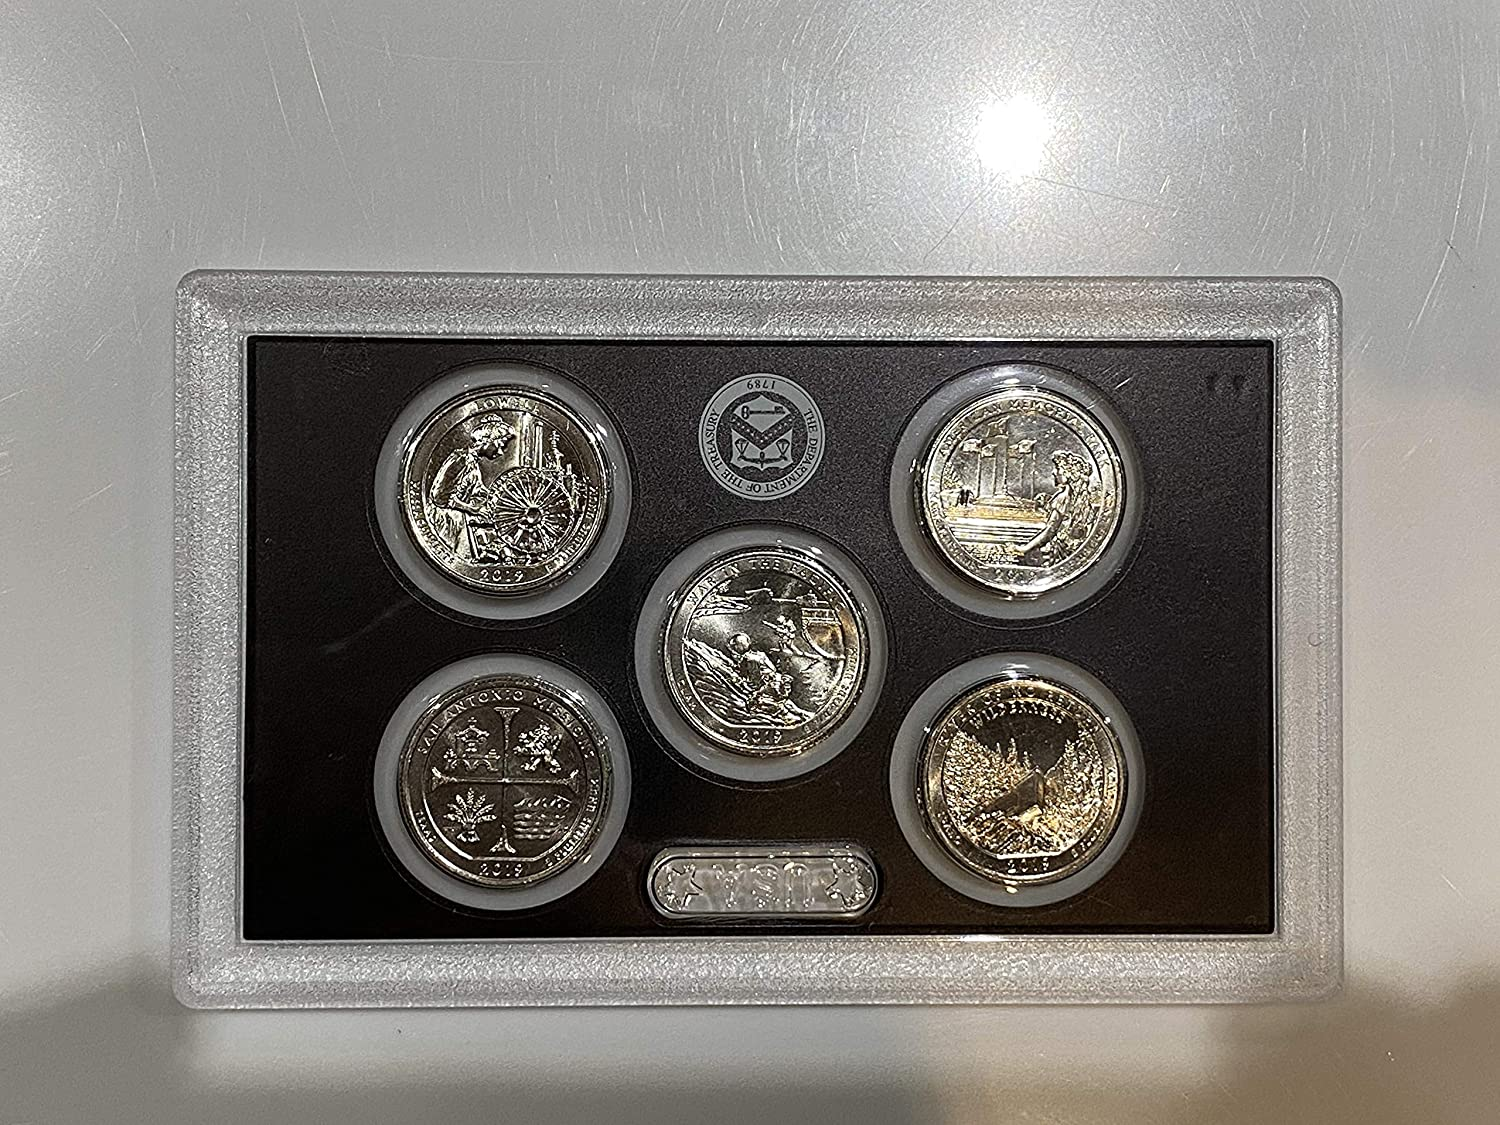 2019-W America the Beautiful West Point Mint Complete Set 5 Coins Uncirculated a